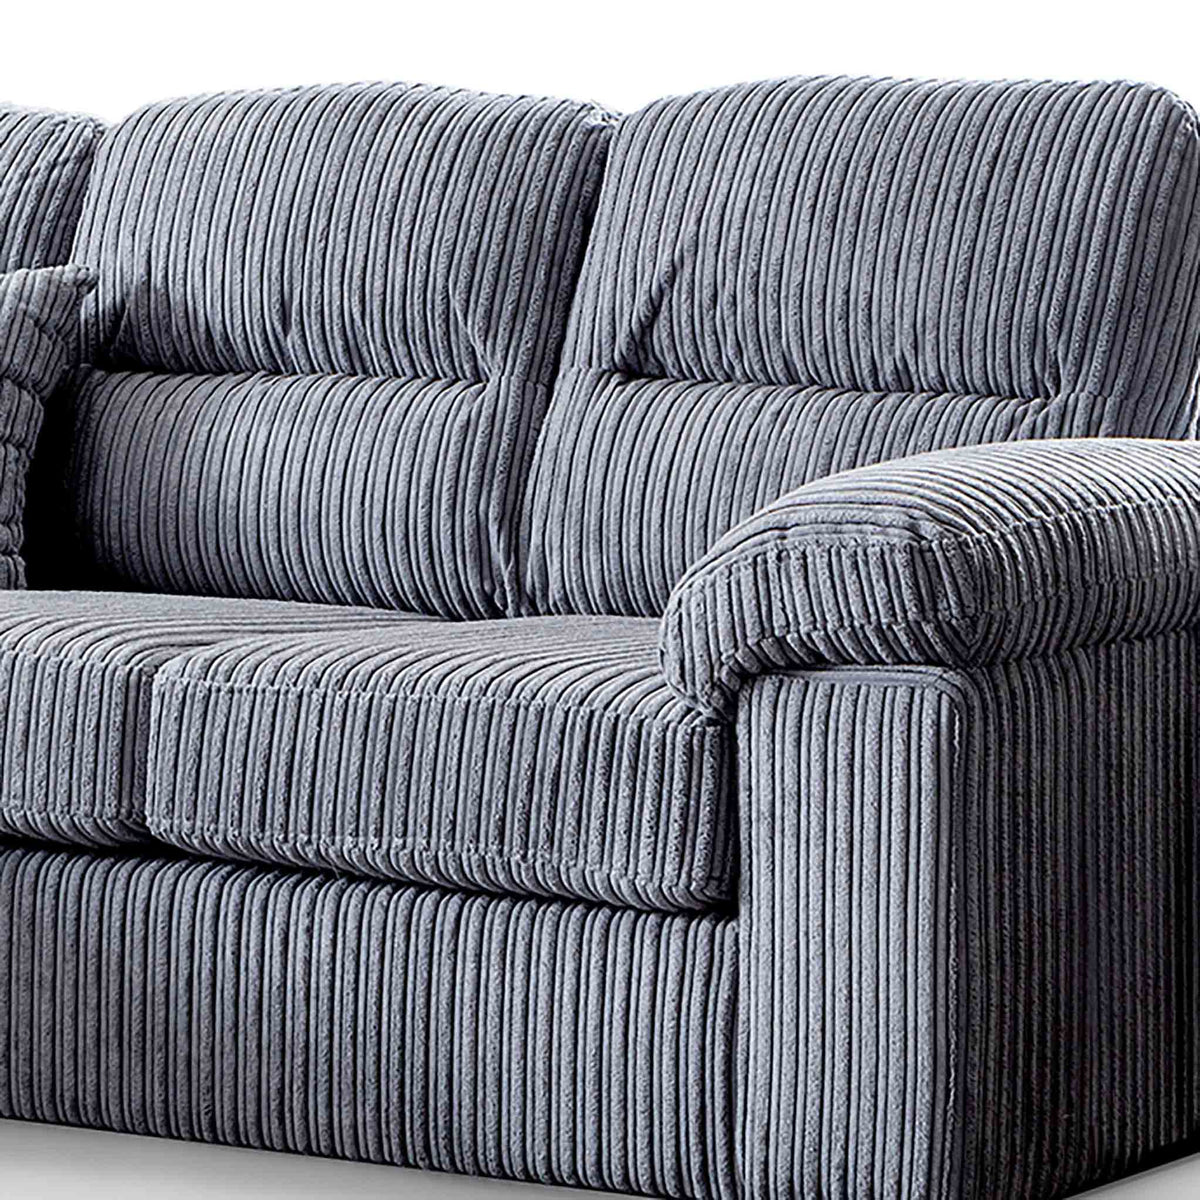 close up of comfy split back cushions on the Amalfi Charcoal Corner Chaise Fabric Sofa